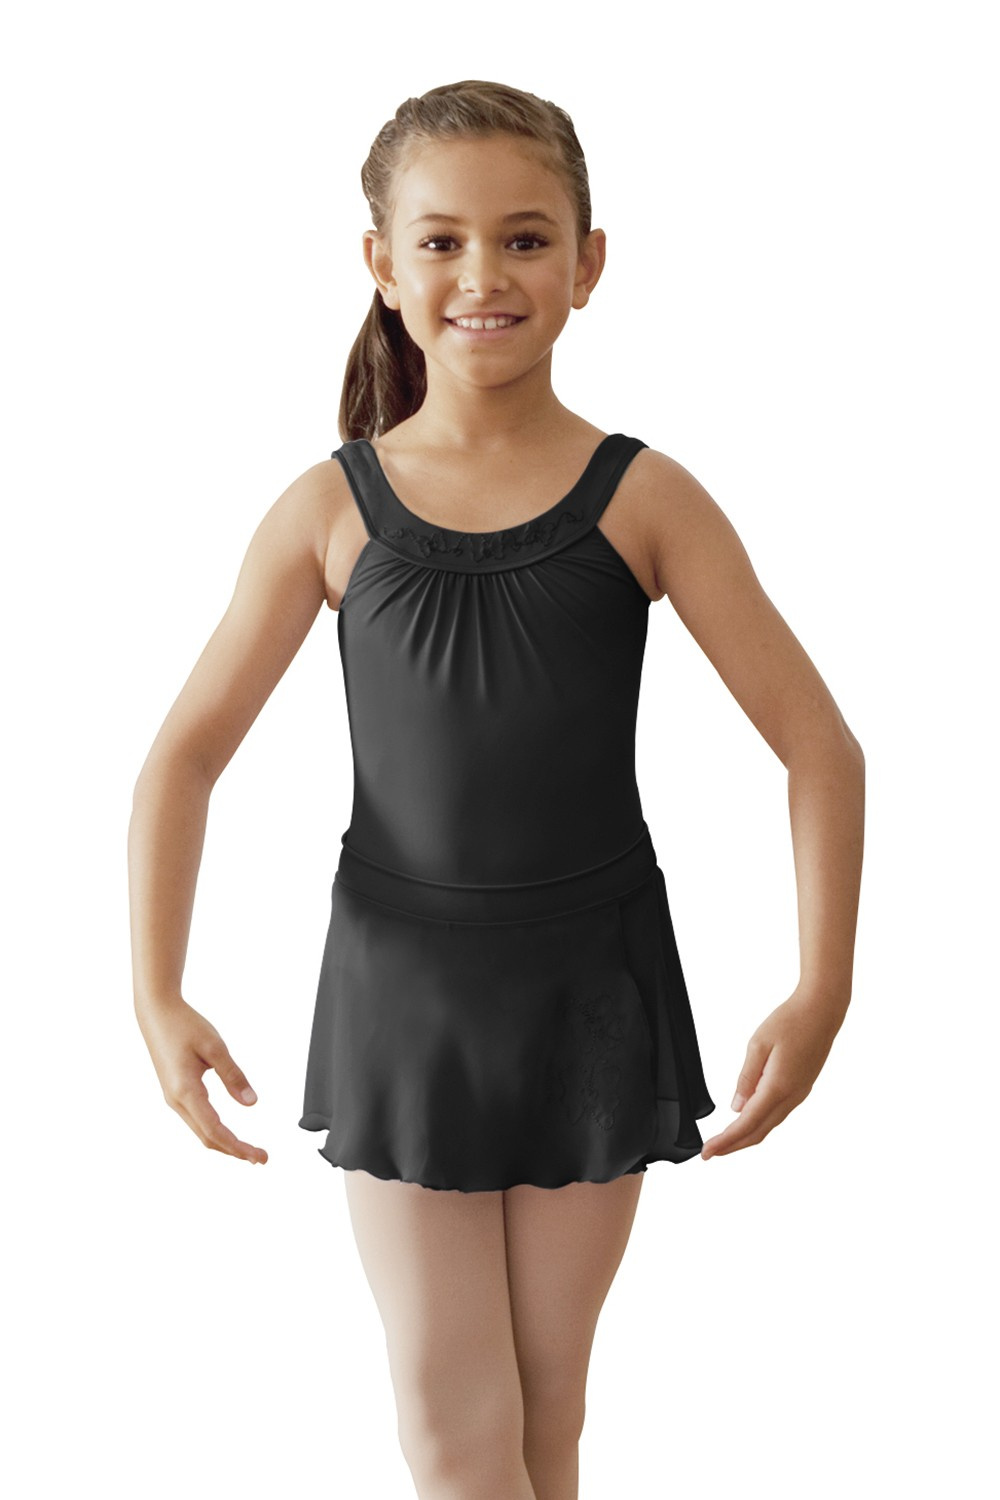 Embroidered Yoke Leotard Children's Dance Leotards